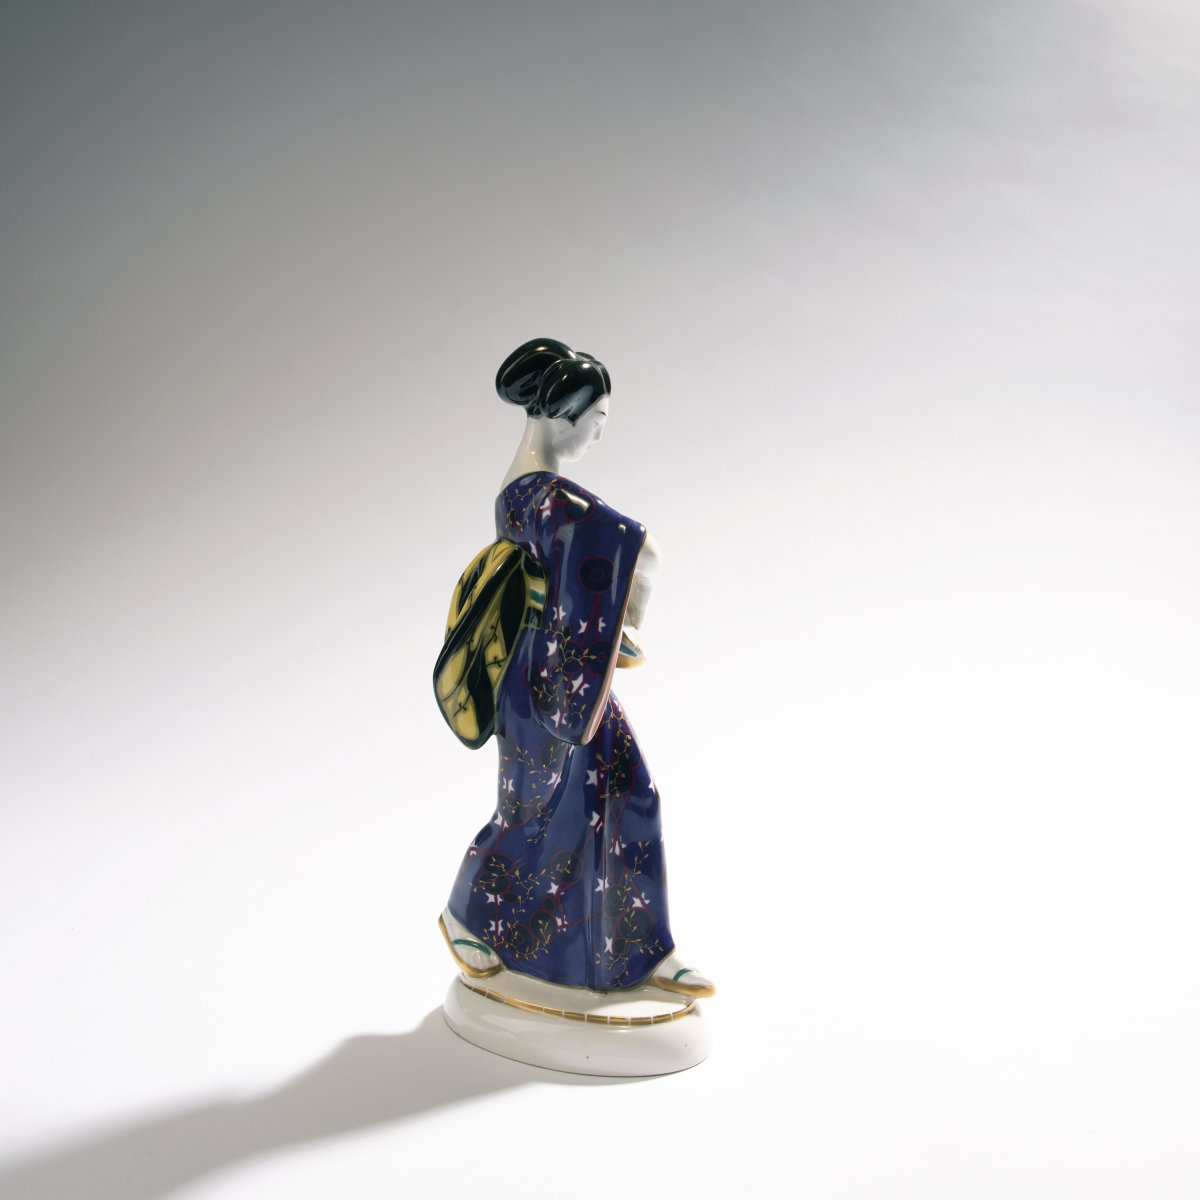 Adolph Amberg, 'Japanese woman', 1909'Japanese woman', 1909H. 27 cm. Made by StPM Berlin, 1924. - Image 2 of 3